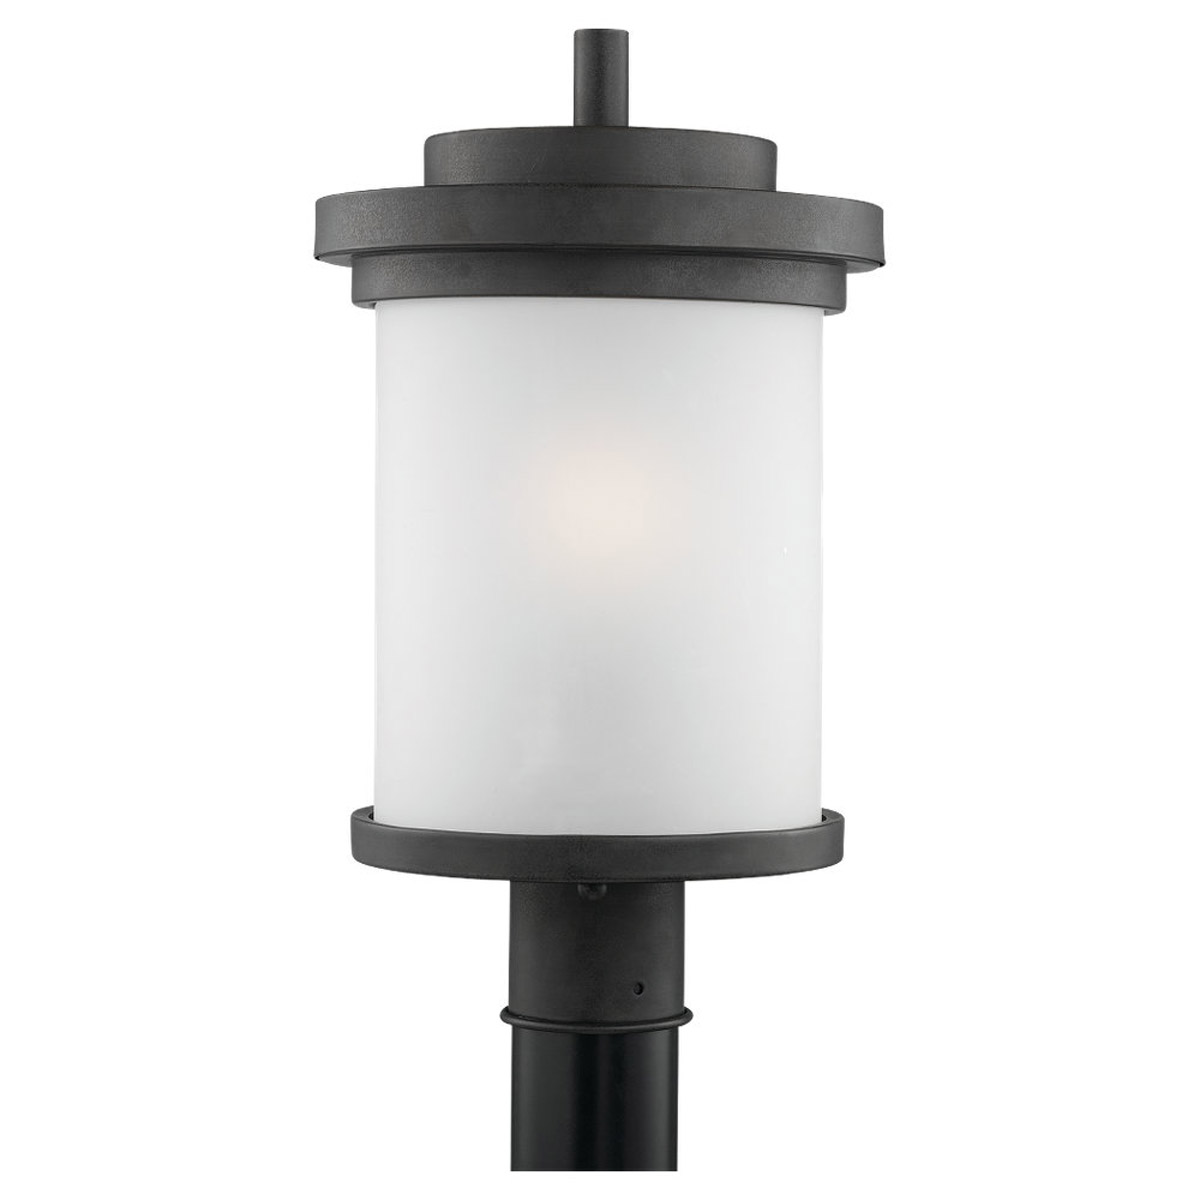 Sea Gull Lighting Winnetka 1 Light Outdoor Post Lantern in Forged Iron 82660-185